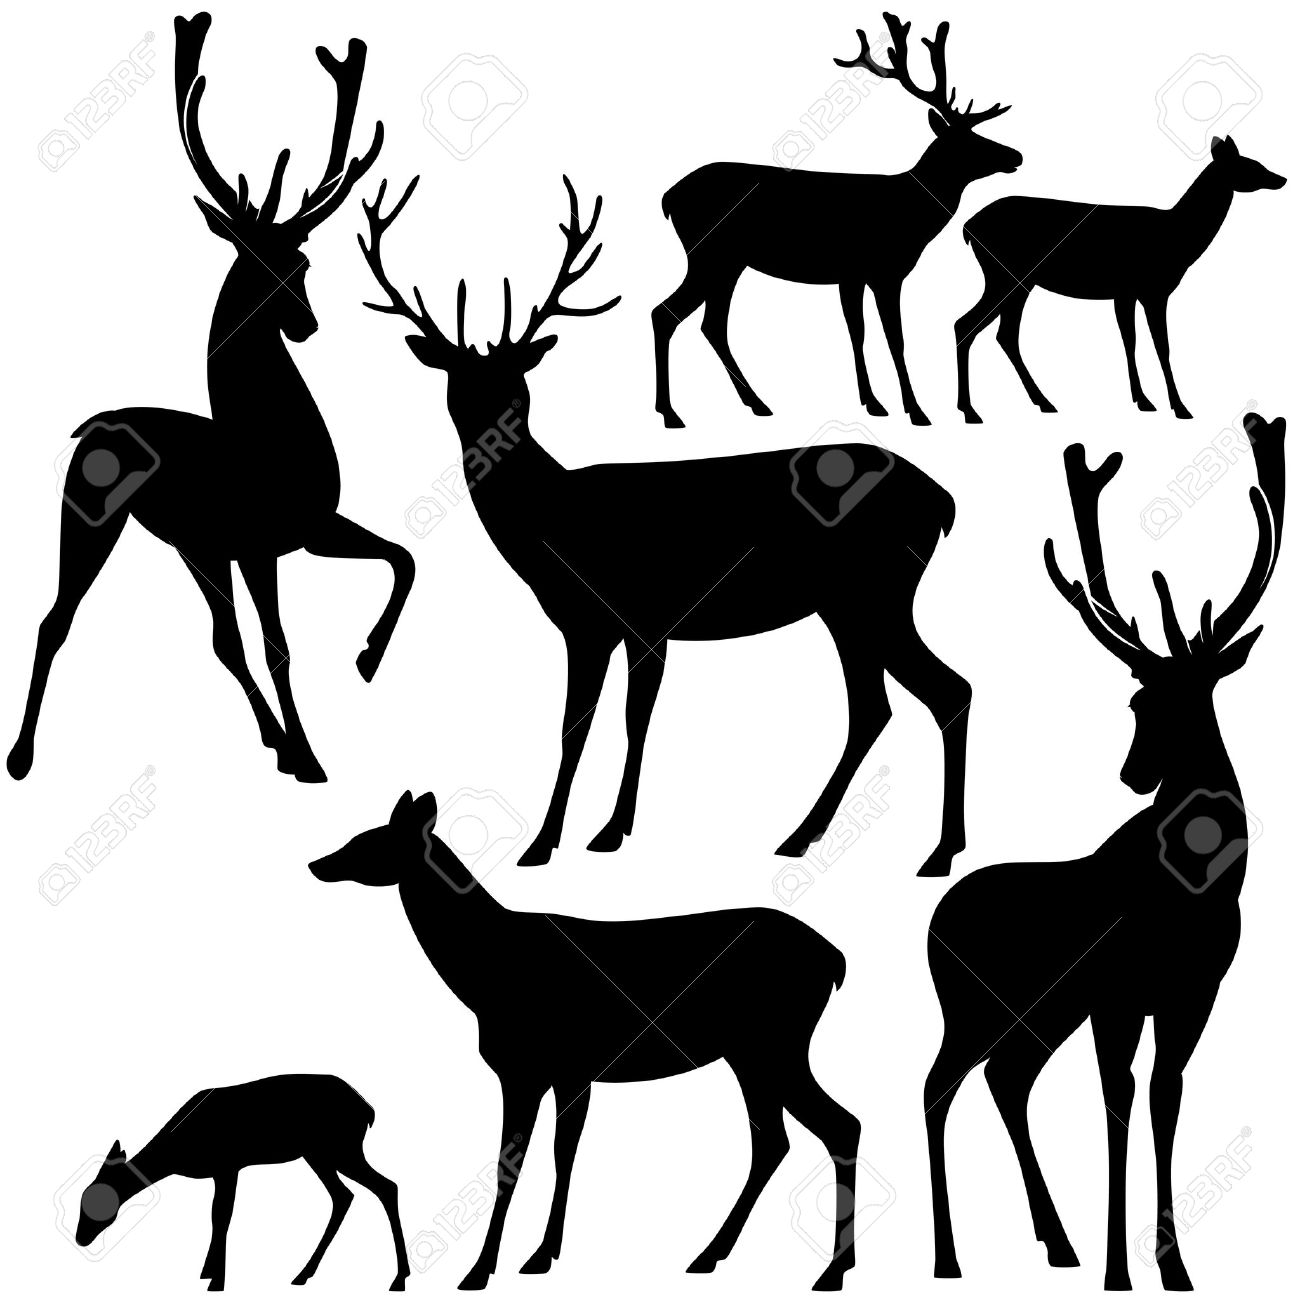 deer black and white silhouette set - vector collection of wild animals detailed outlines - 31380017